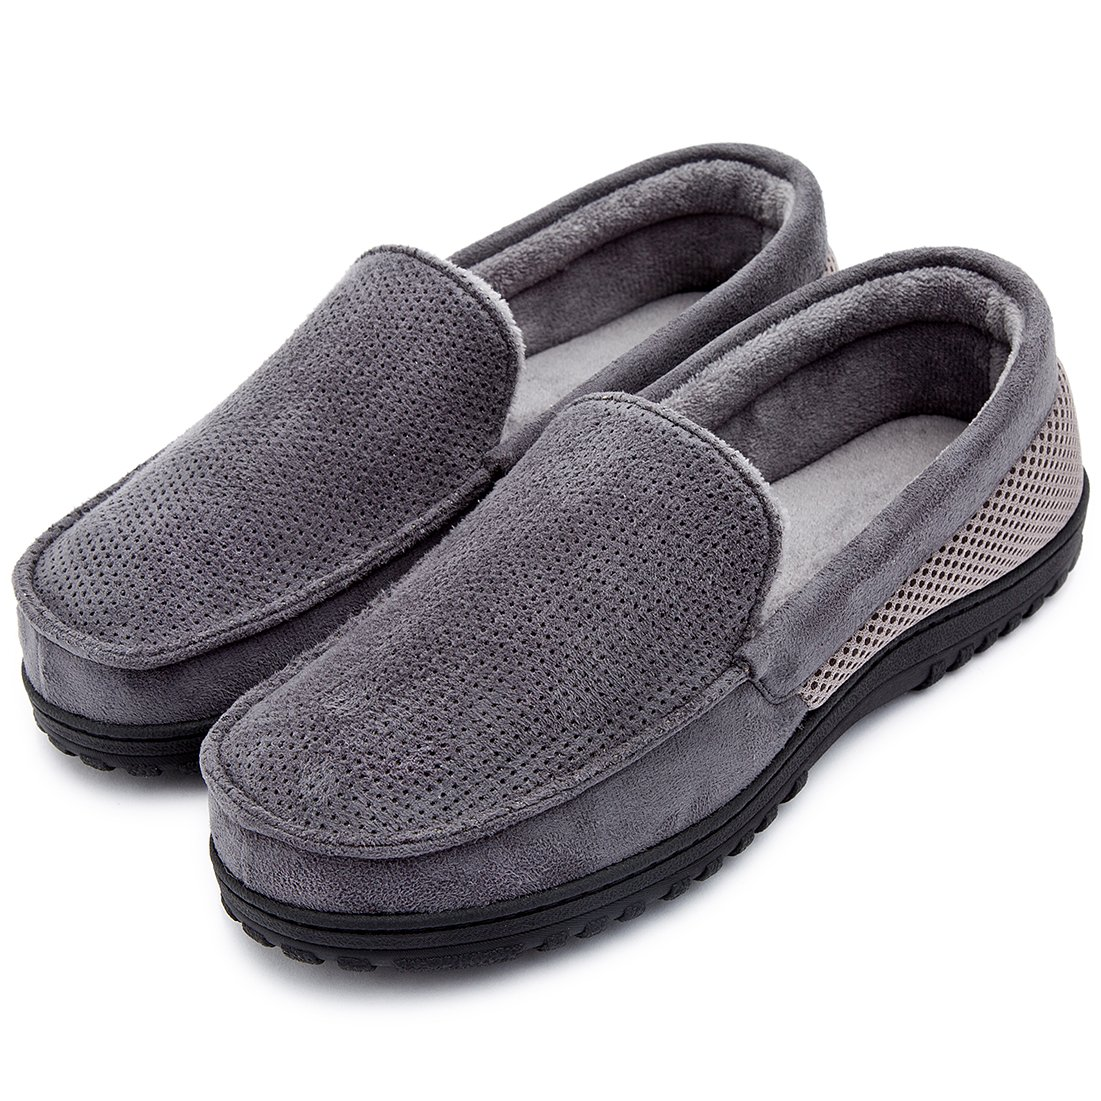 Men's Breathable Micro Suede Memory Foam Moccasins Slippers Plush Fleece Indoor/Outdoor Loafer Shoes w/Arch Supports (10 D(M) US, Dark Gray) by ULTRAIDEAS